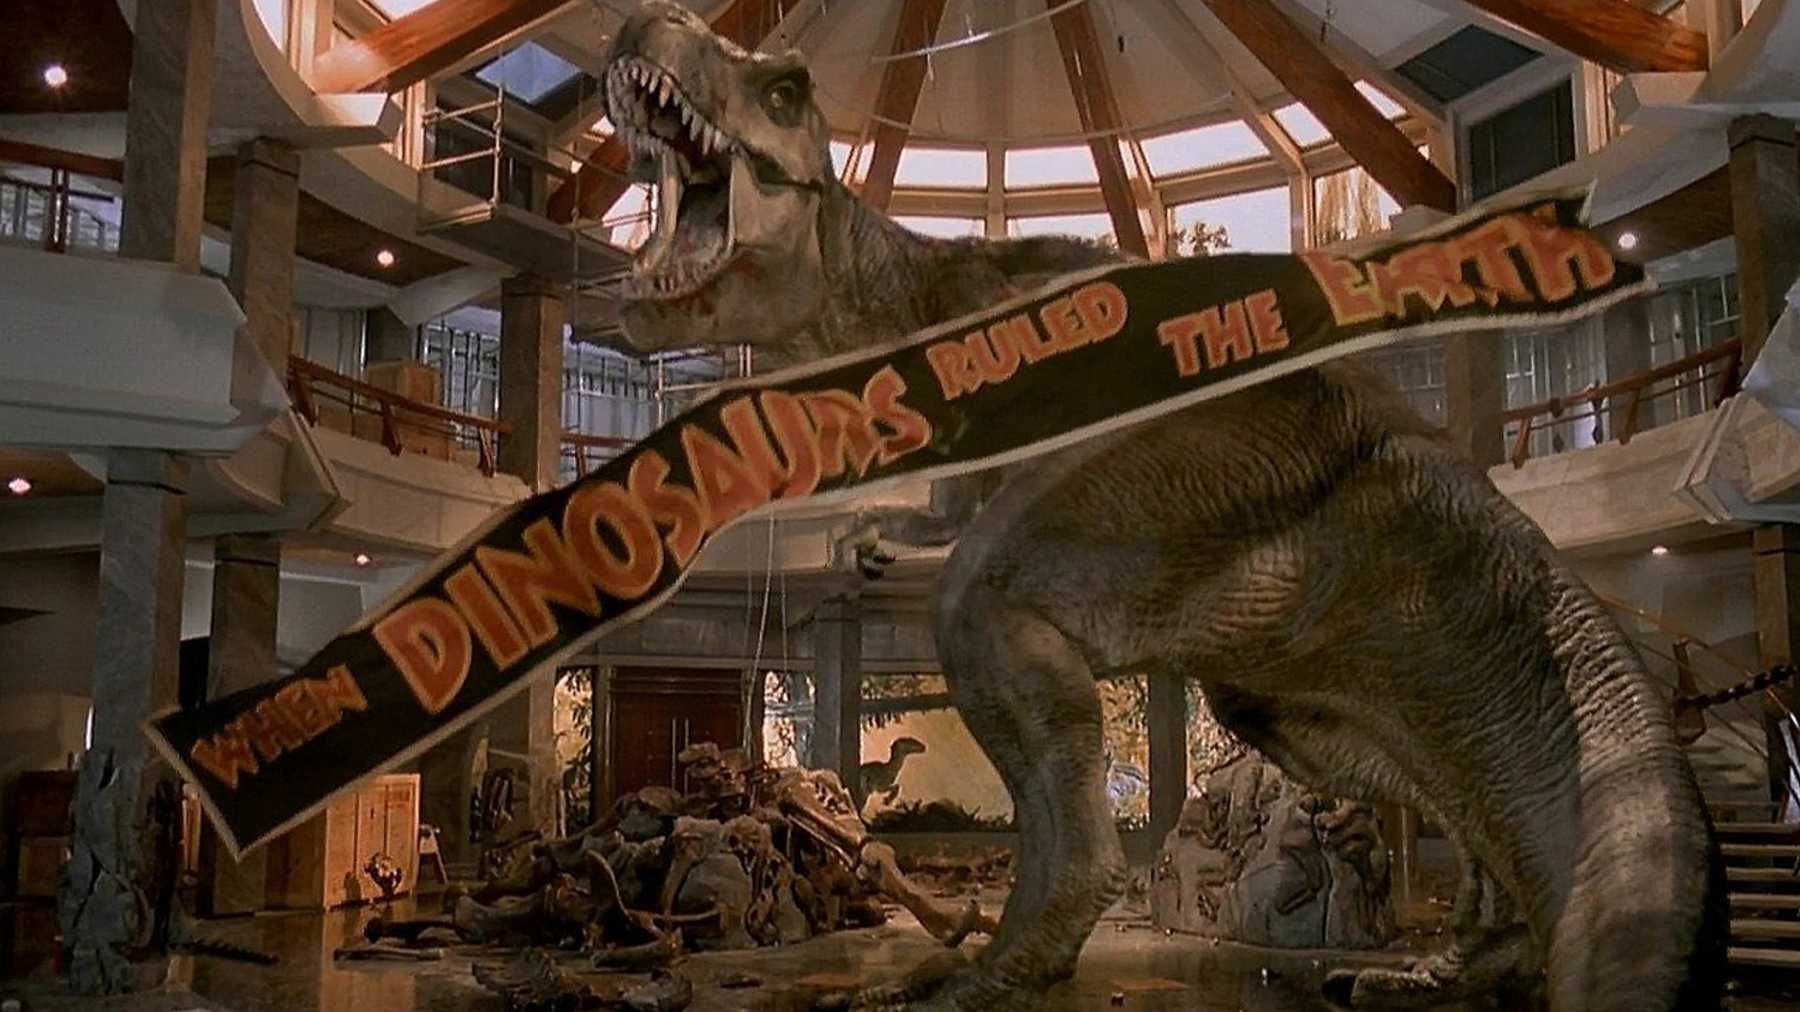 T-Rex at the end of Jurassic Park, a personal favorite for when I am sick.